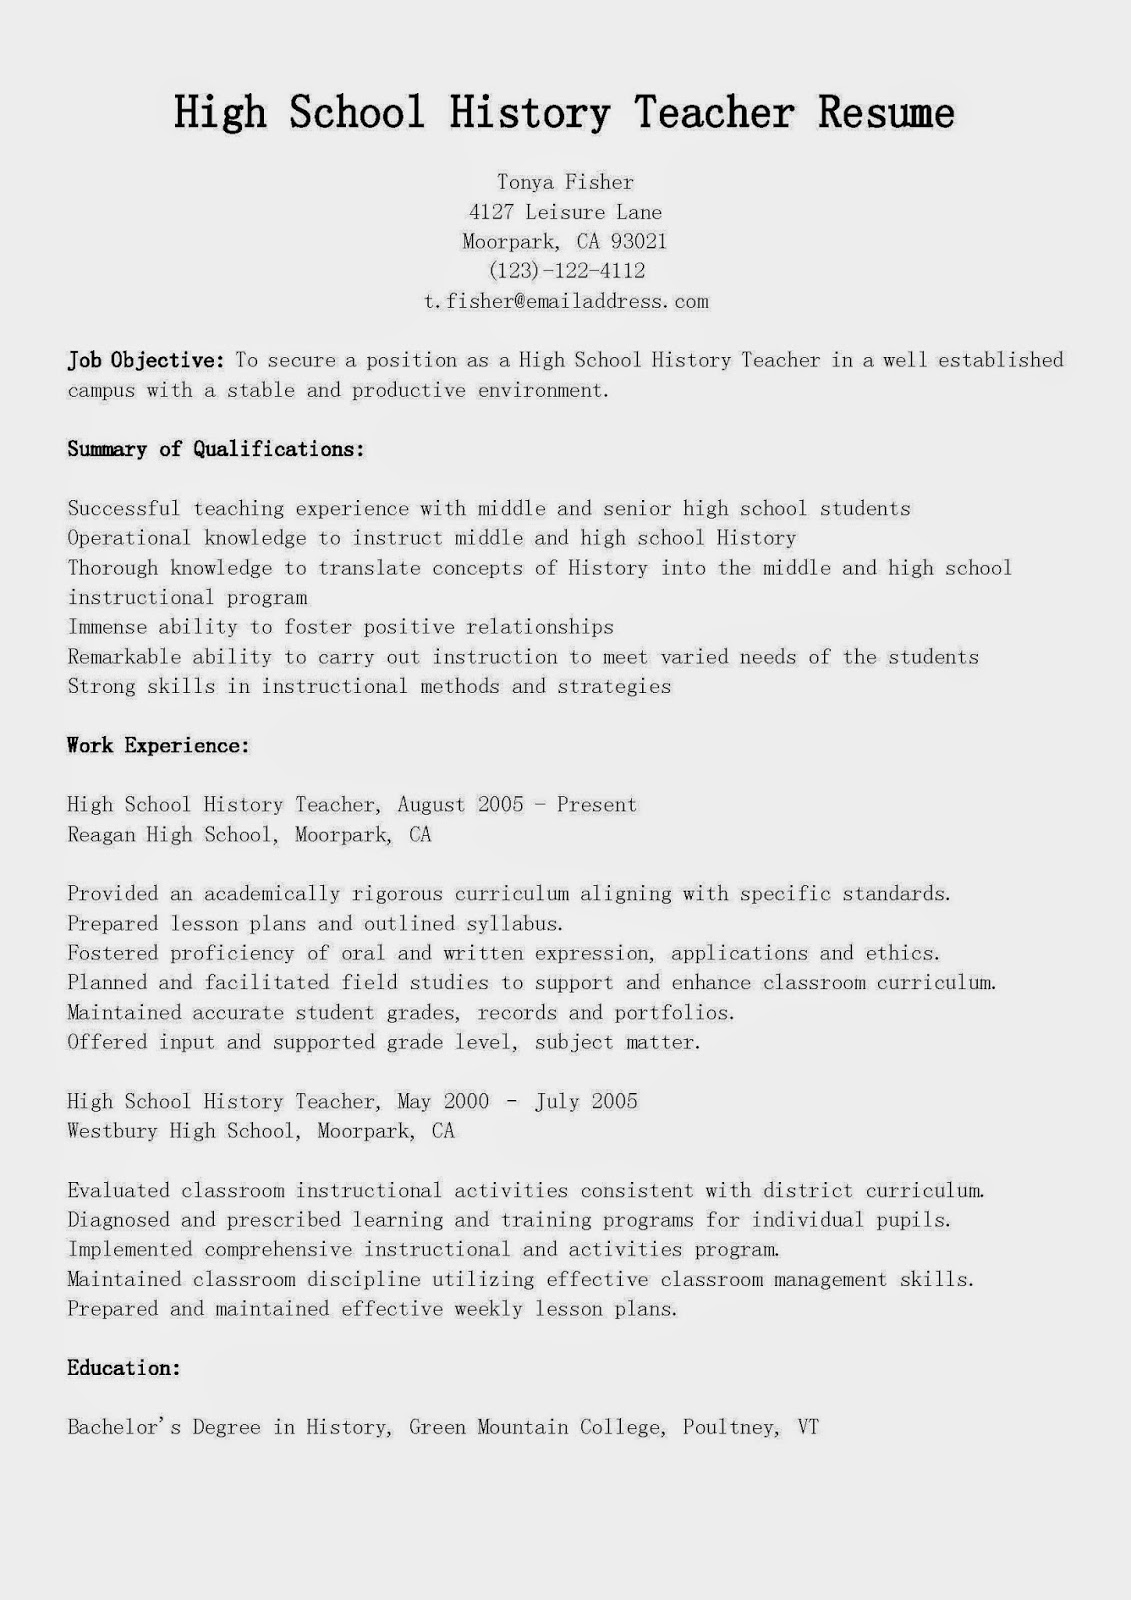 resume samples  high school history teacher resume sample